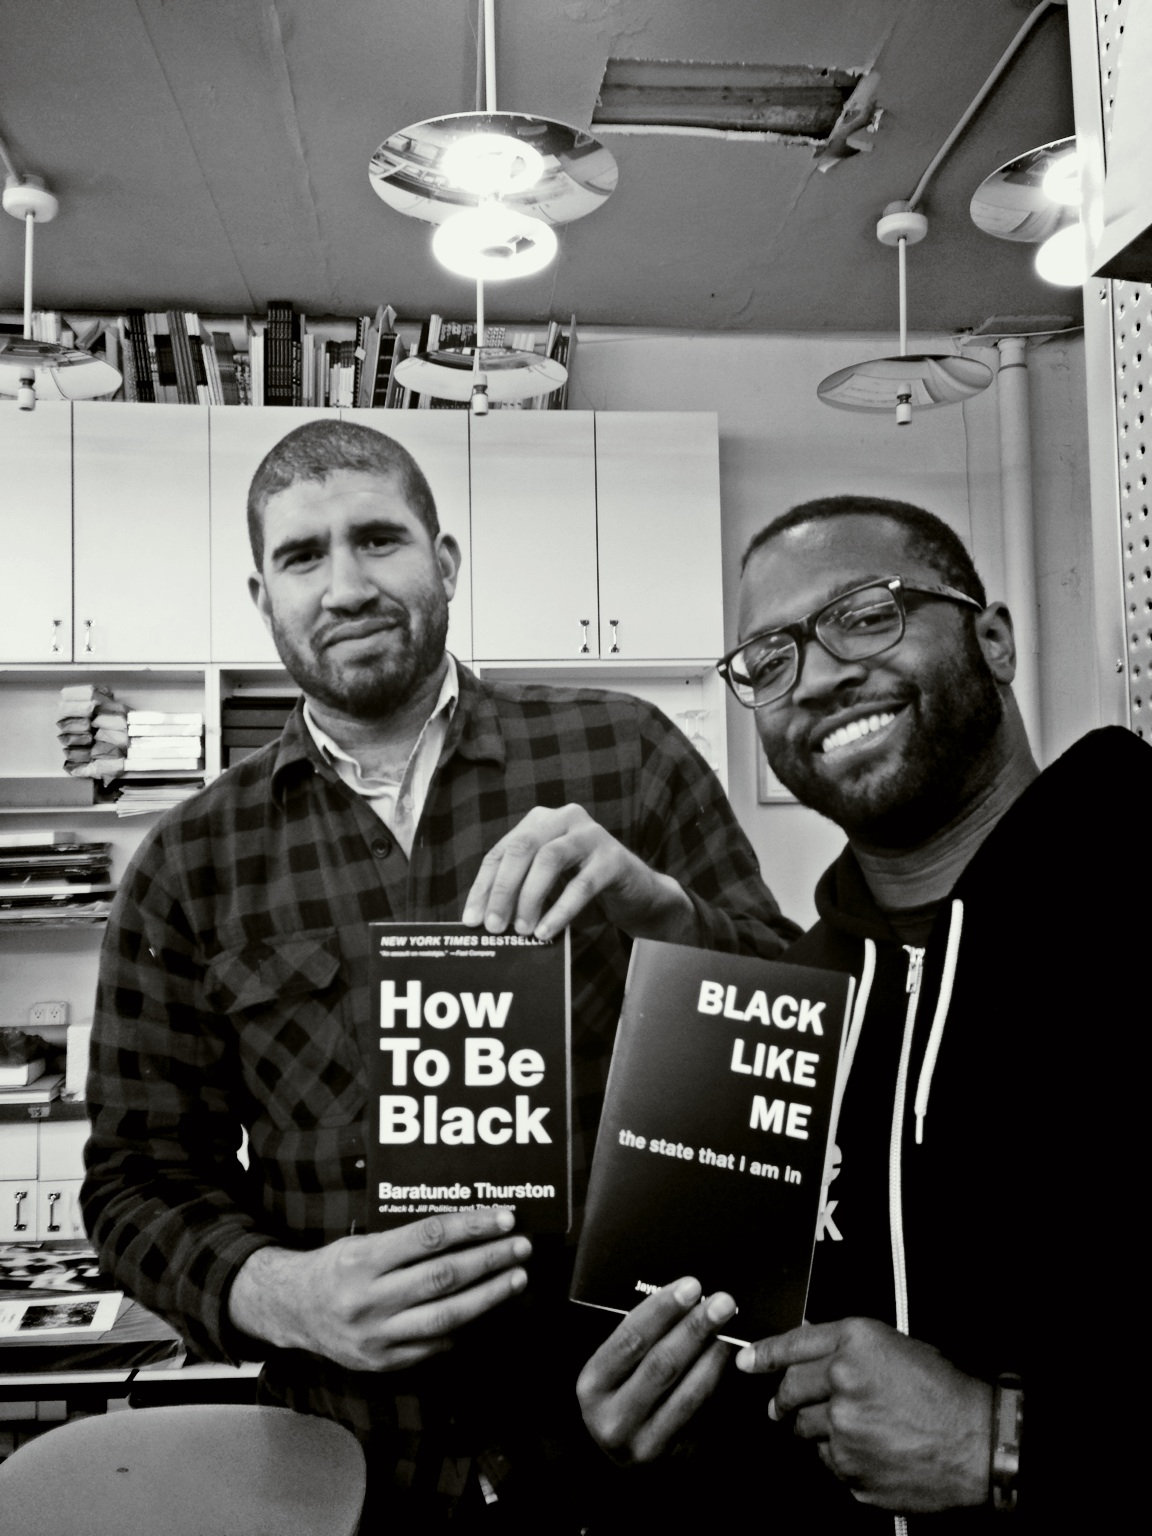 Meeting of the minds. @therealhennessy & #blacklikeme meet #howtobeblack at Printed Matter – View on  Path .